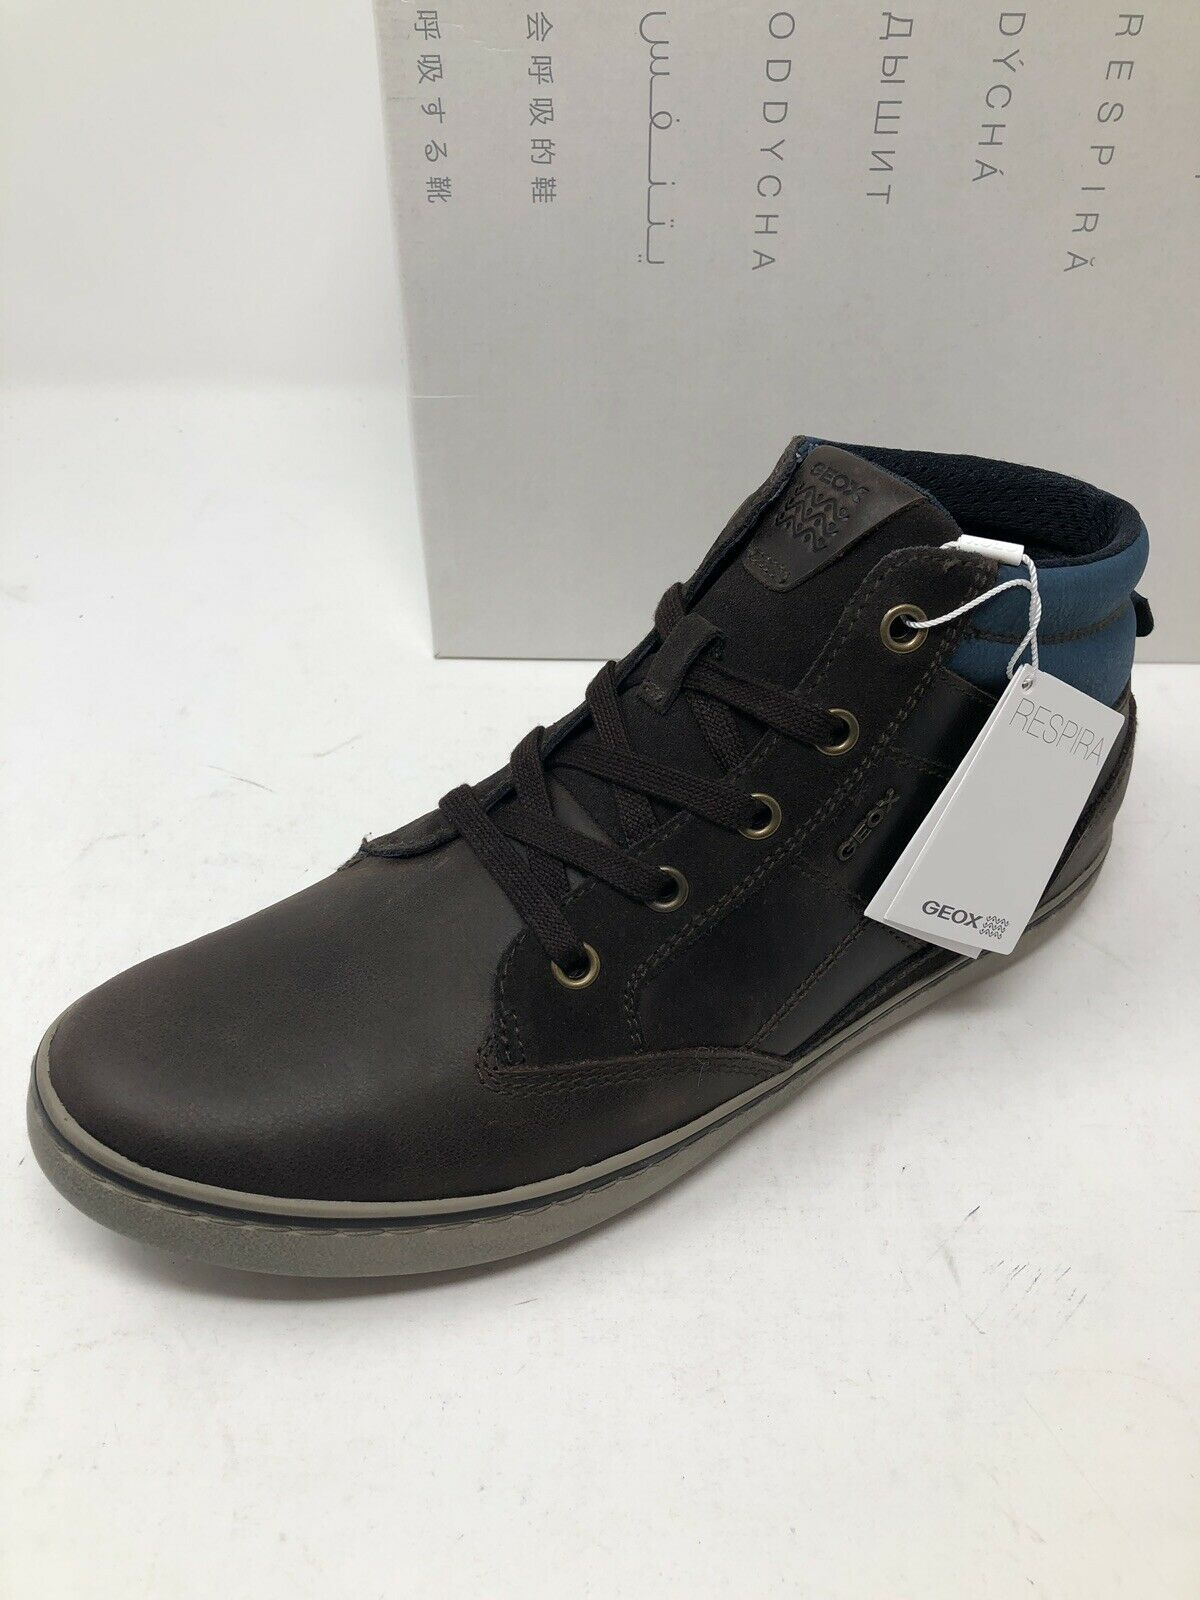 New Geox Mens shoes Brown Sneakers High Tops Size 7 US 6 EU